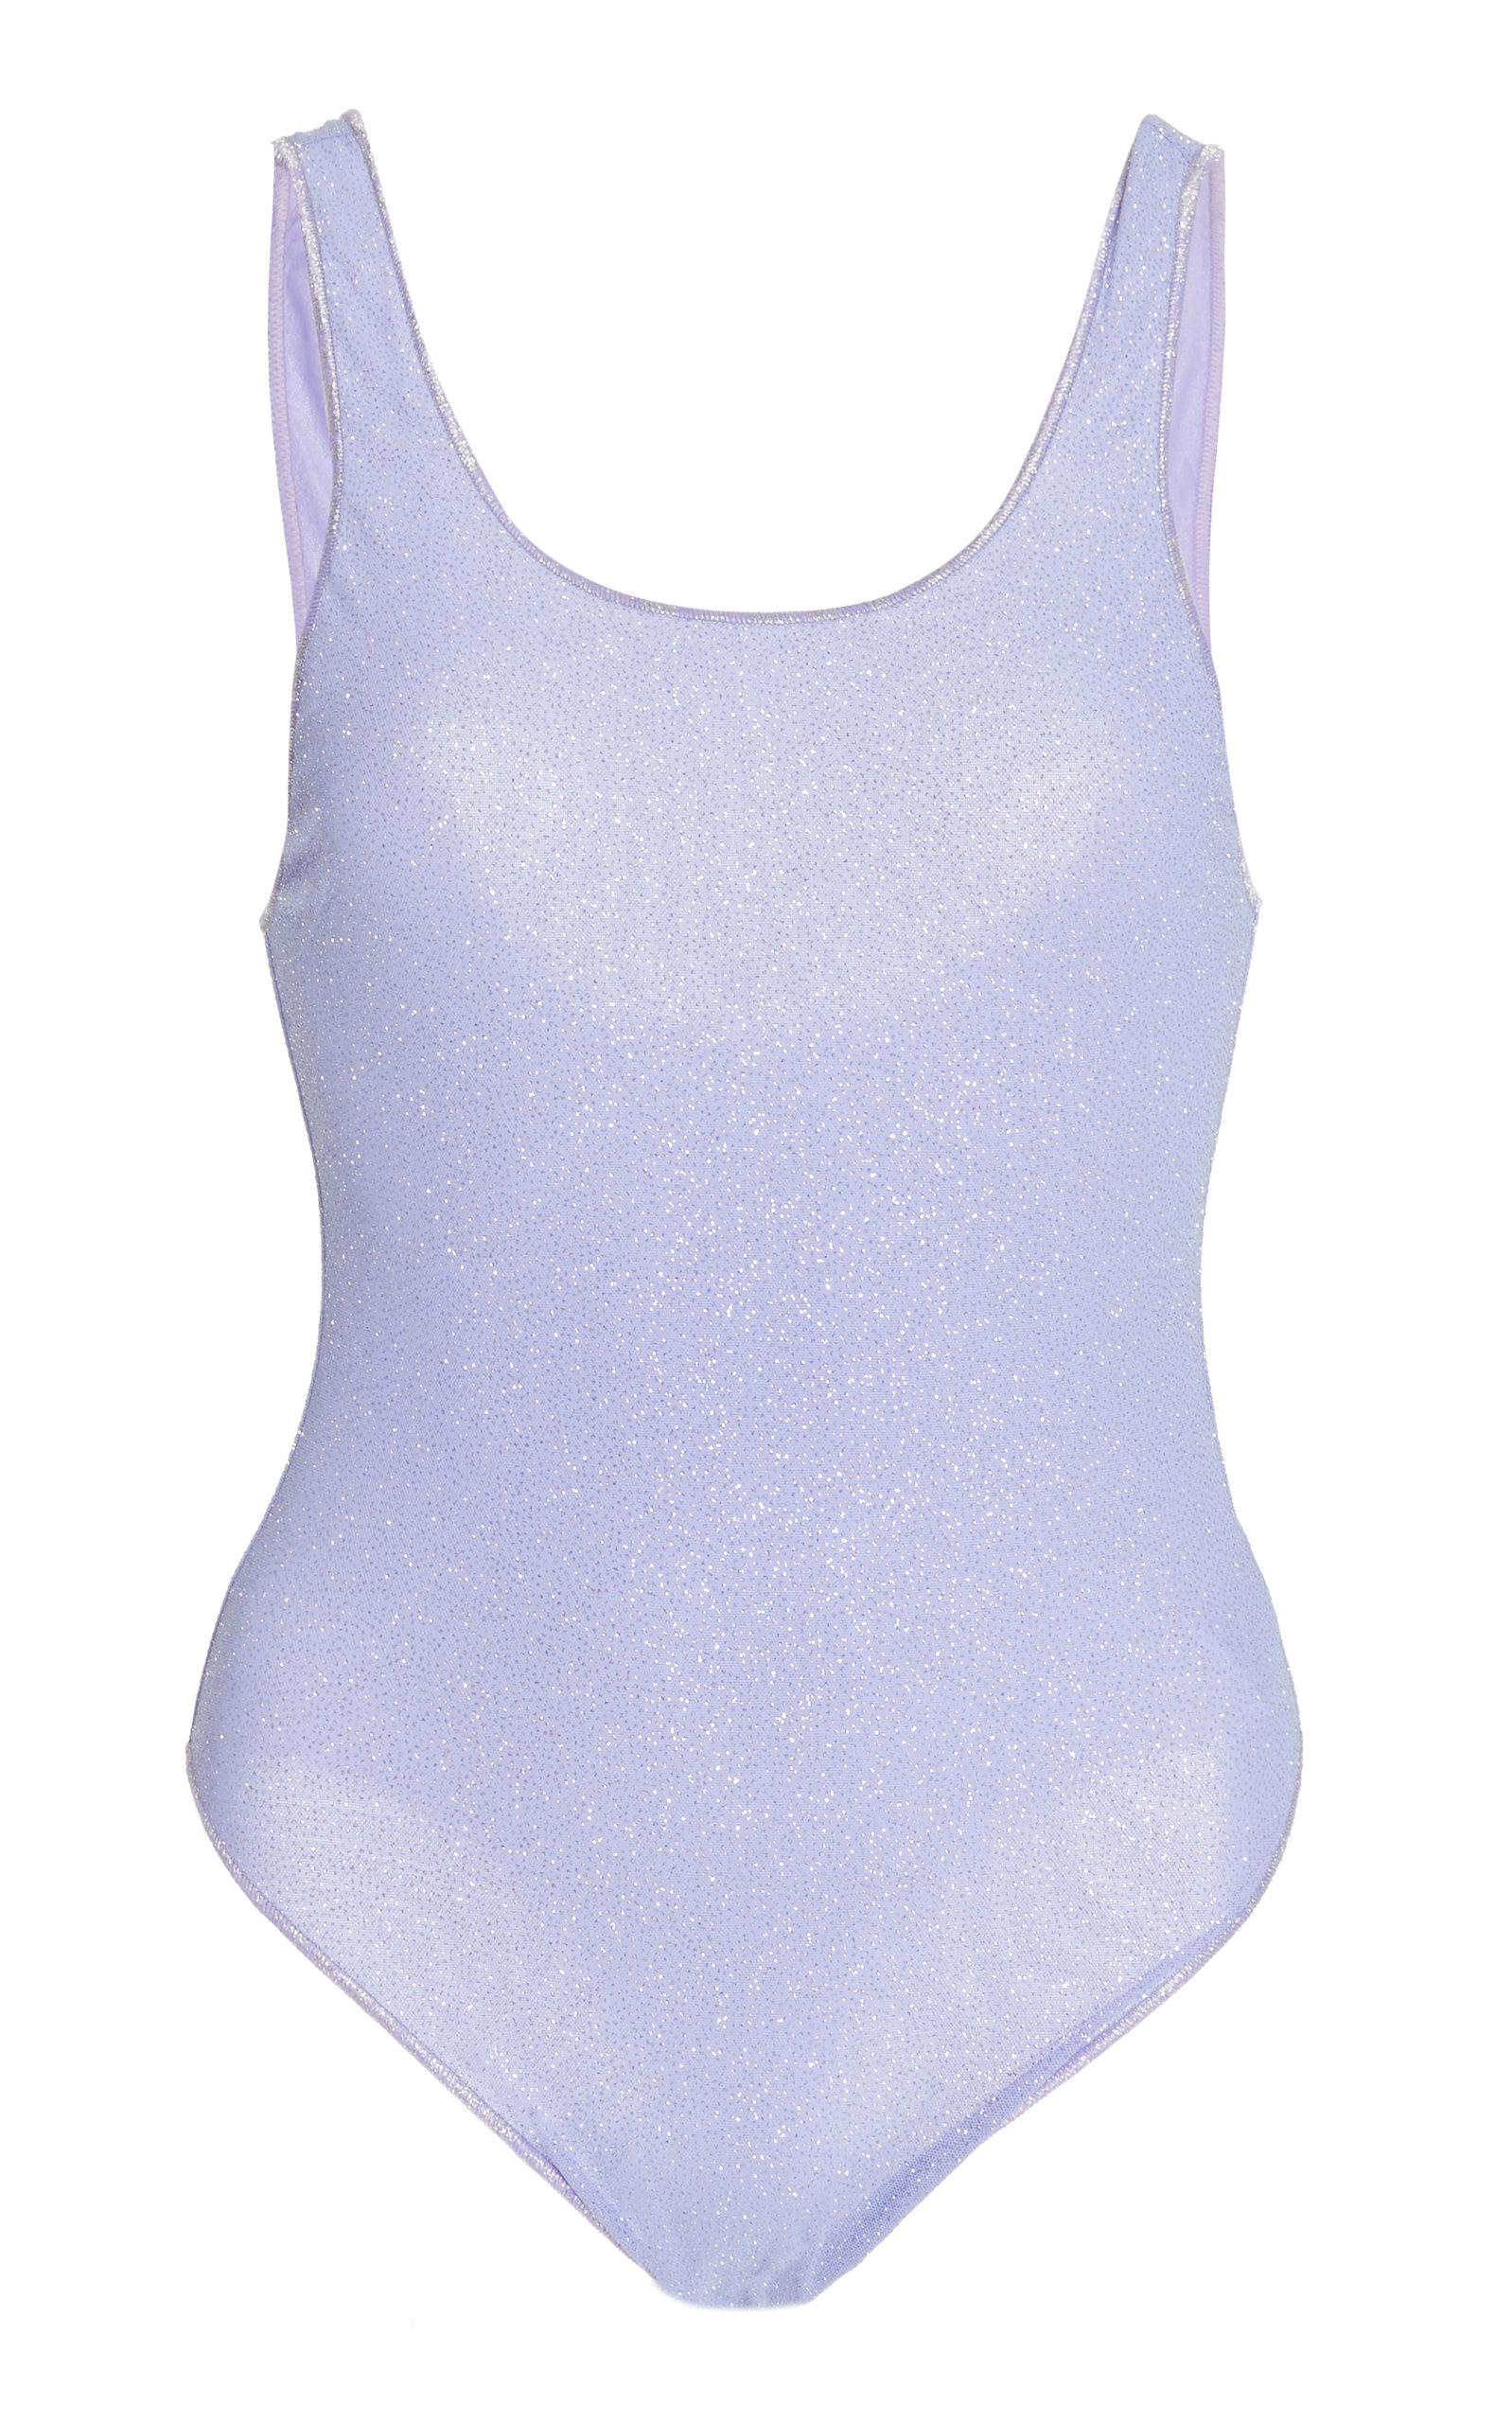 Oseree One-pieces WOMEN'S SHINE SPORTY SWIMSUIT